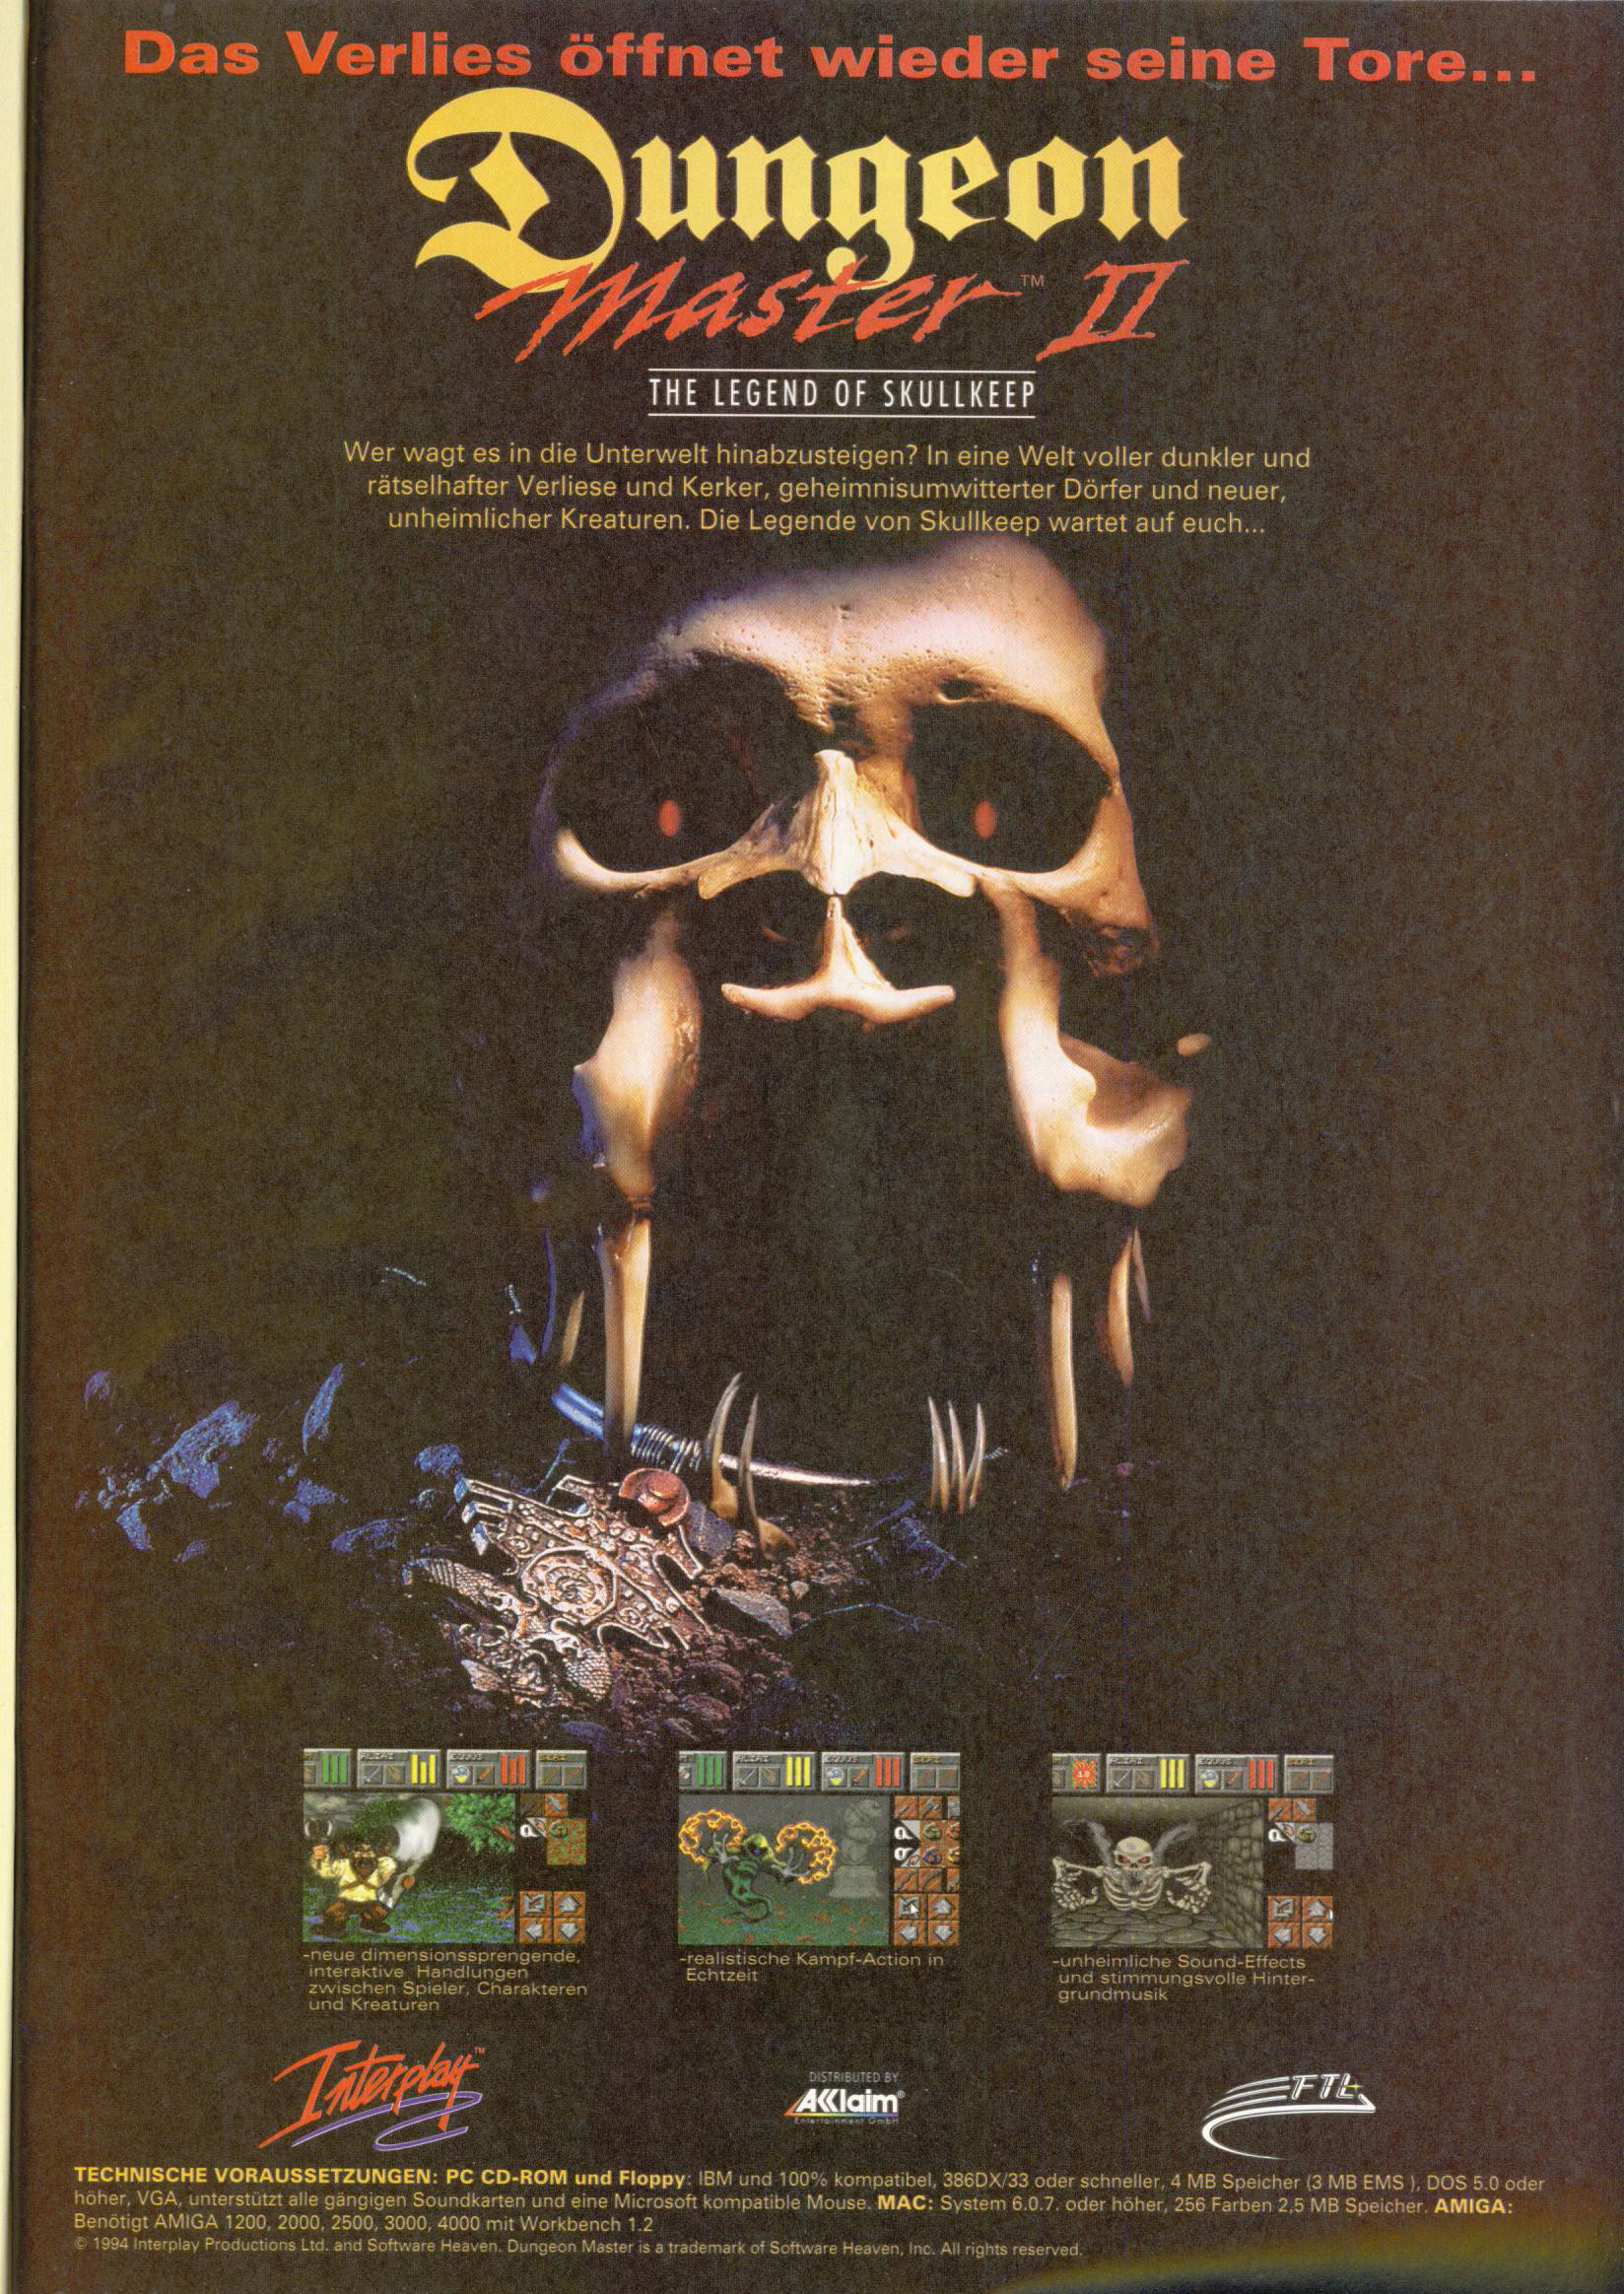 Dungeon Master II for PC Advertisement published in German magazine 'PC Spiel', September 1995, Page 11